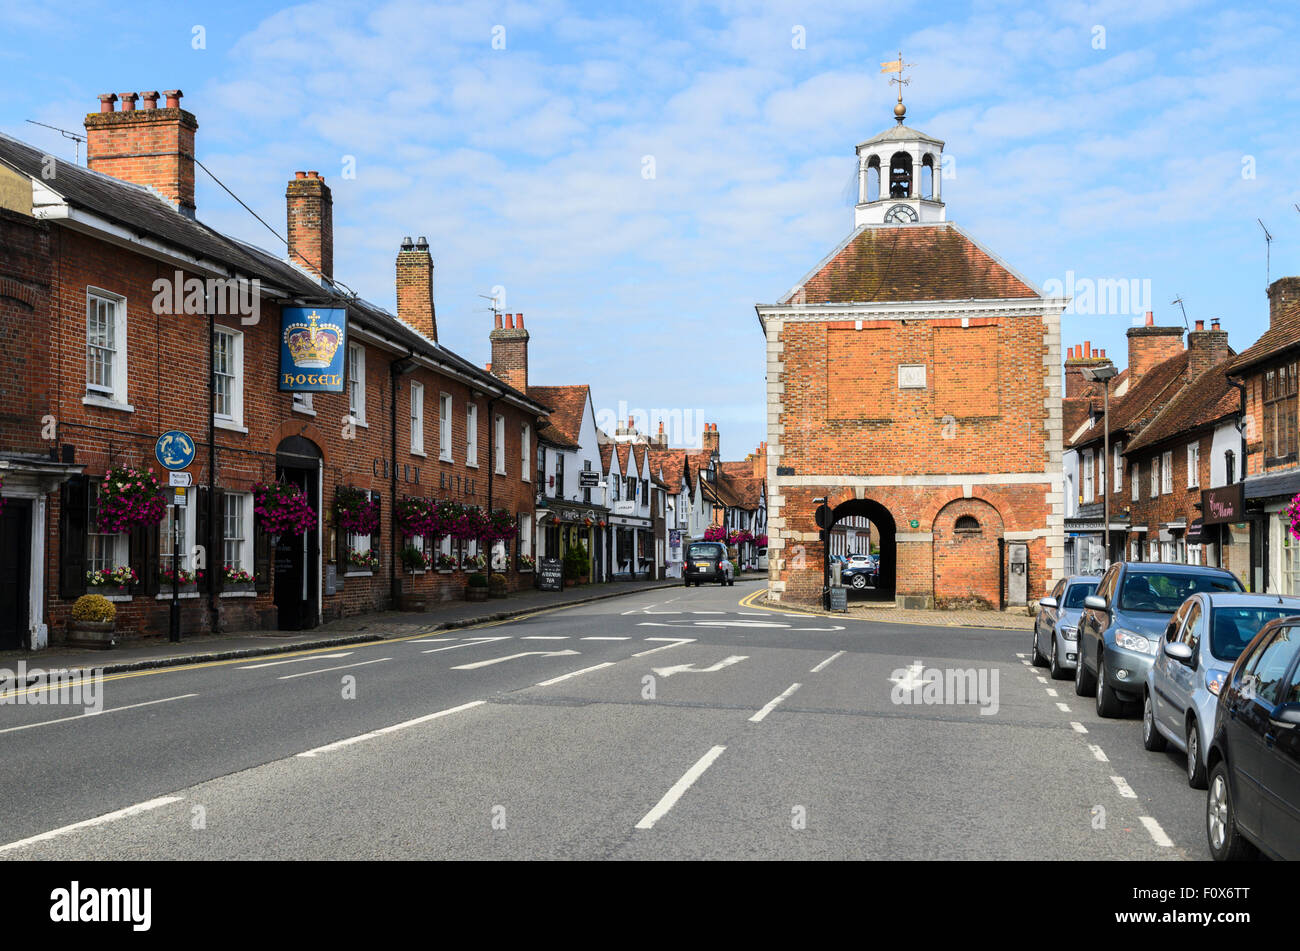 Old Amersham High Street, Buckinghamshire, England, UK - Stock Image